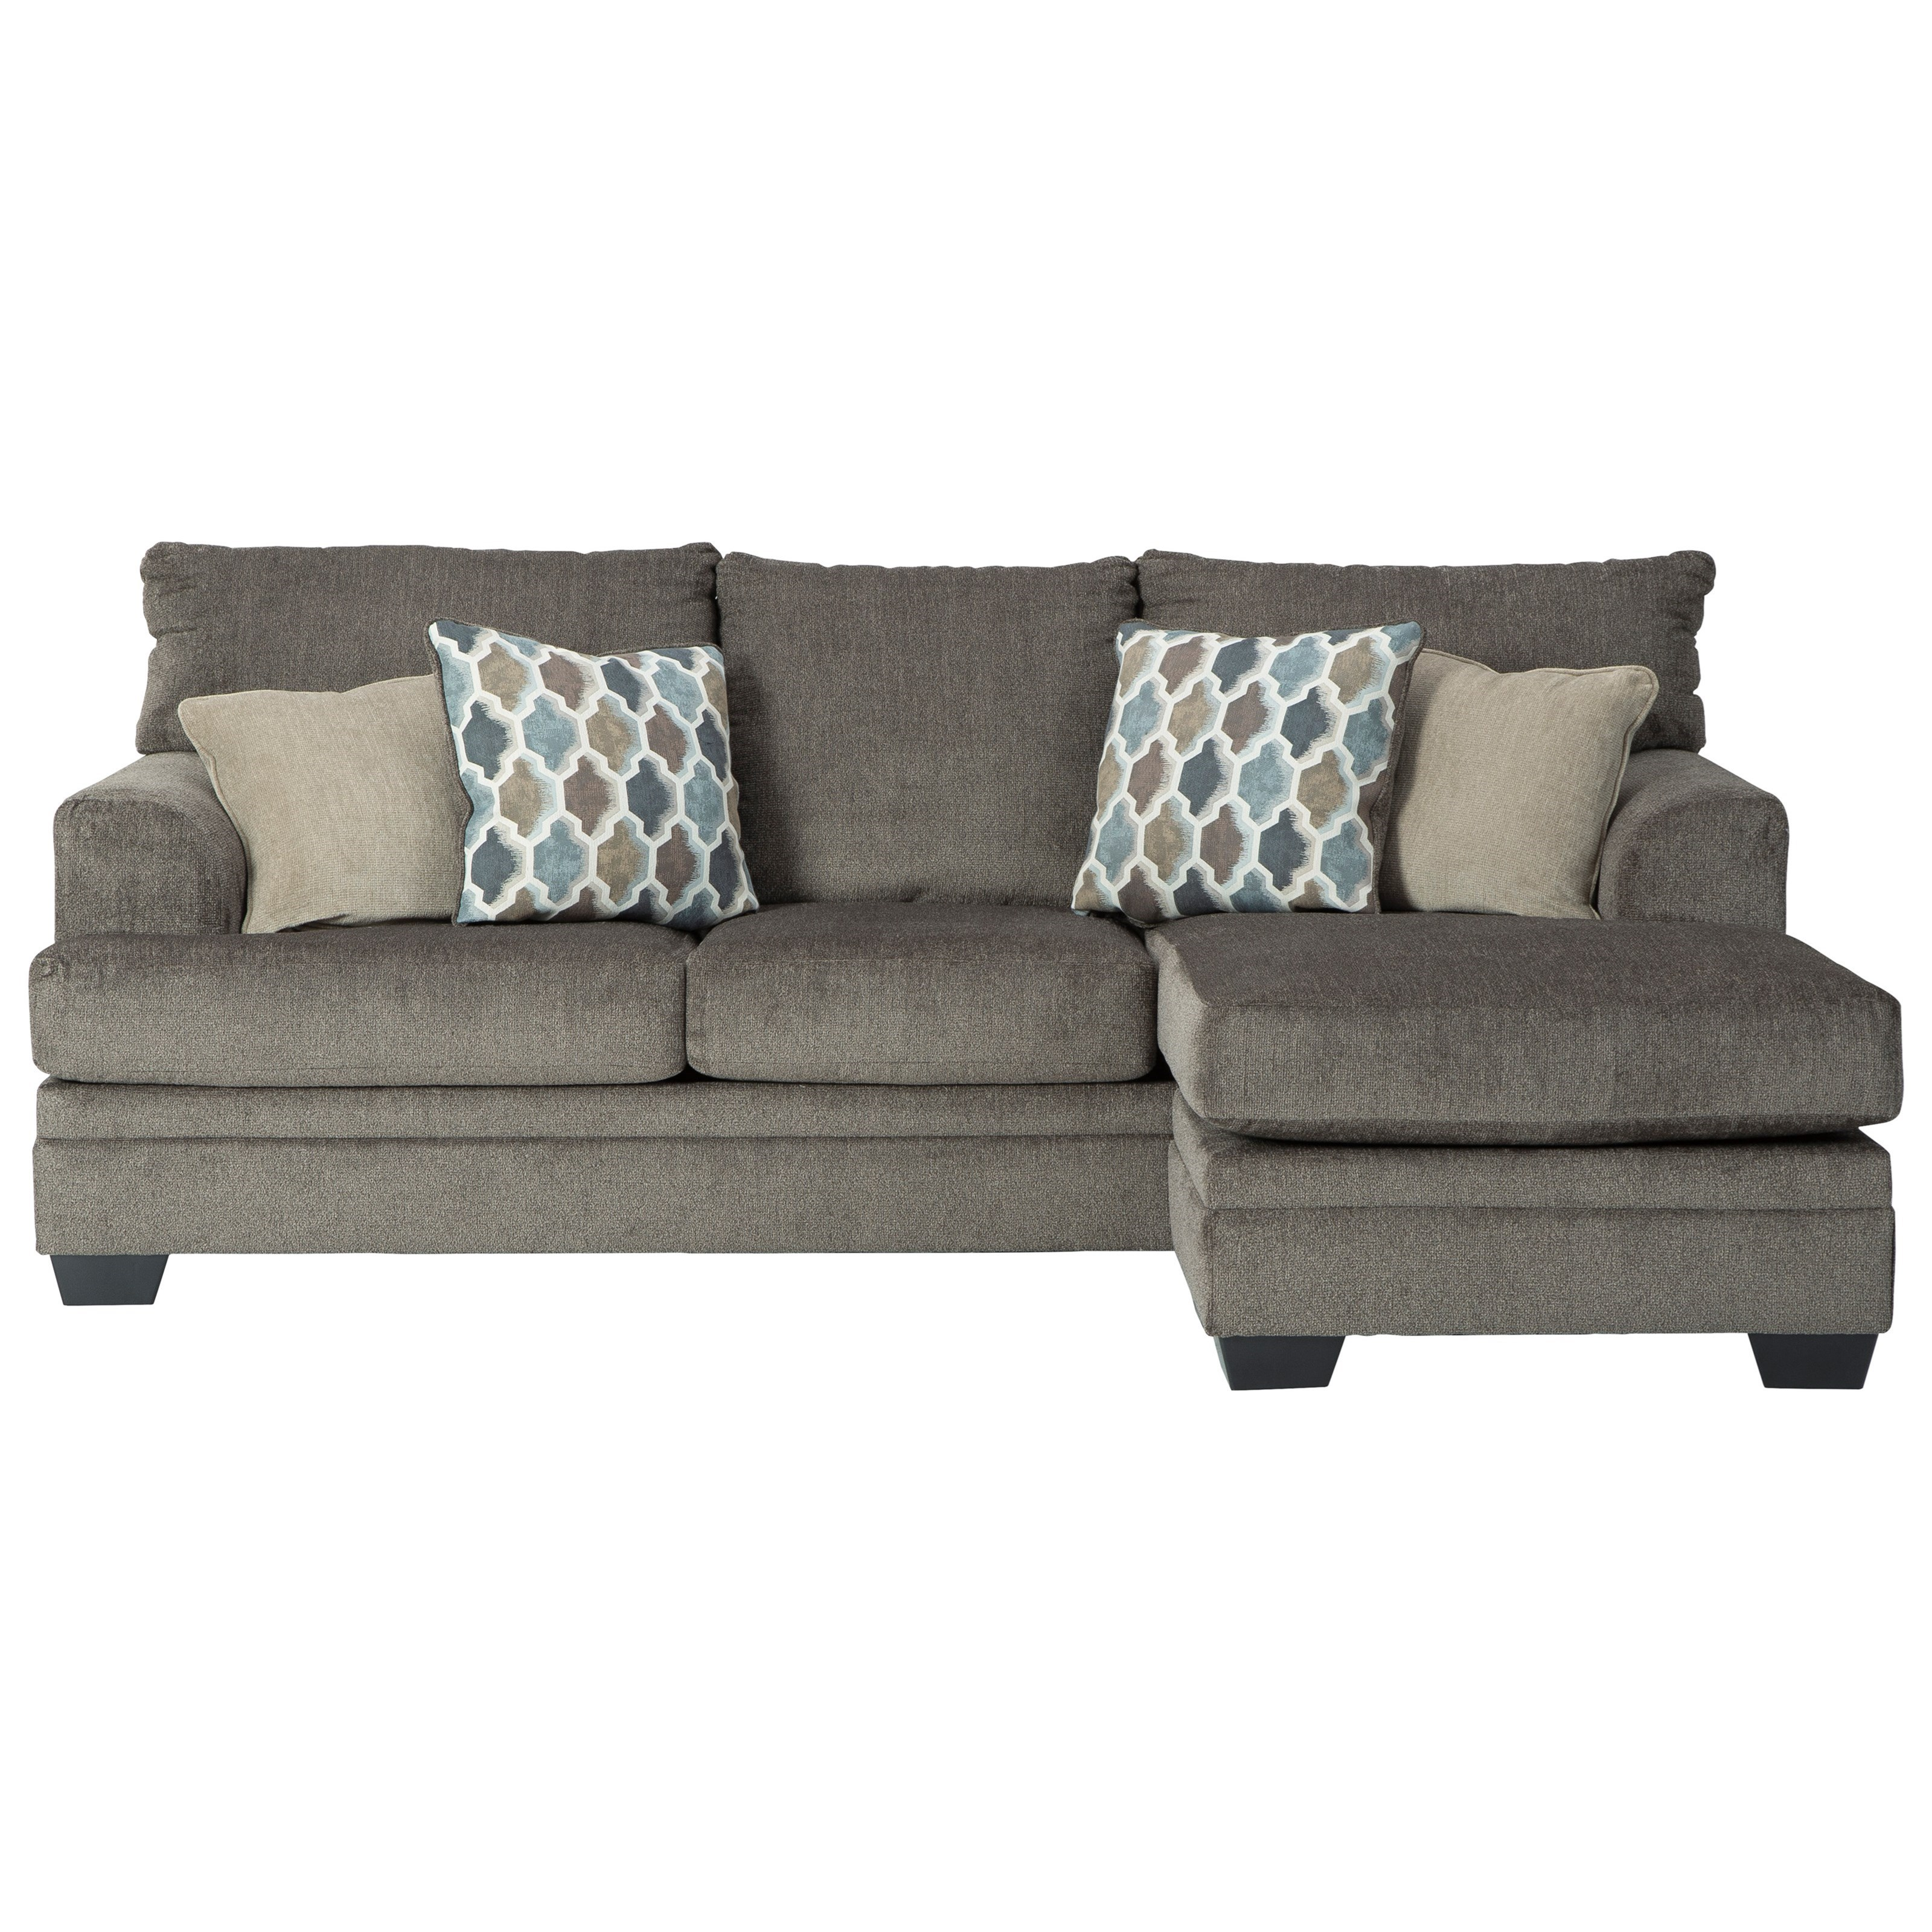 Drew Sofa with Chaise by Signature at Walker's Furniture